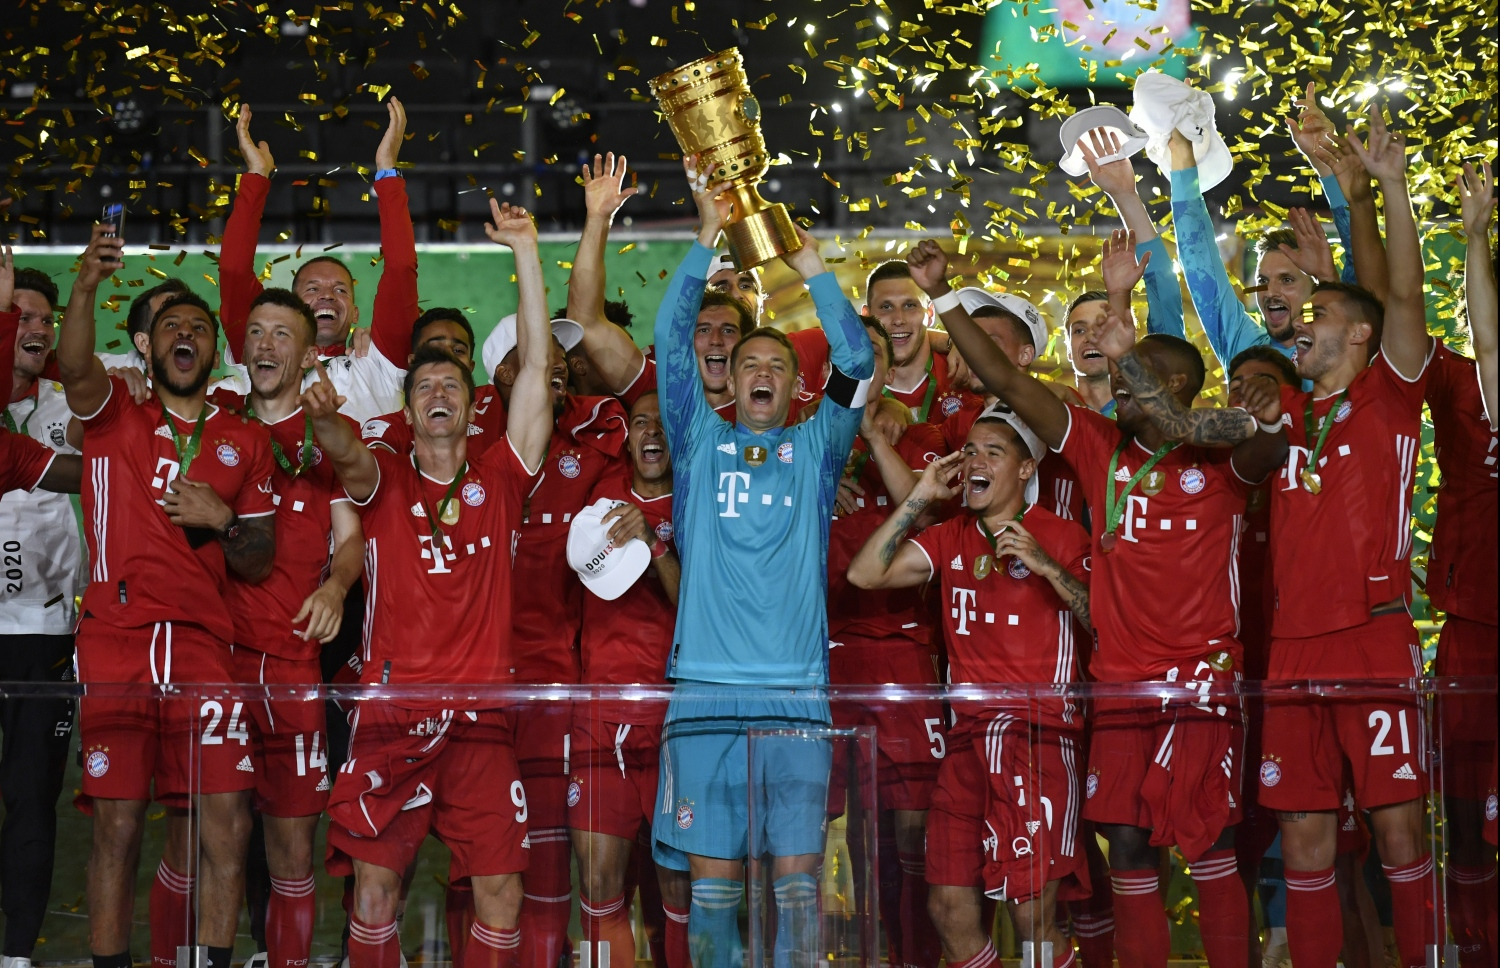 Neuer says Bayern 'hungry' for treble after Cup triumph - The Edition